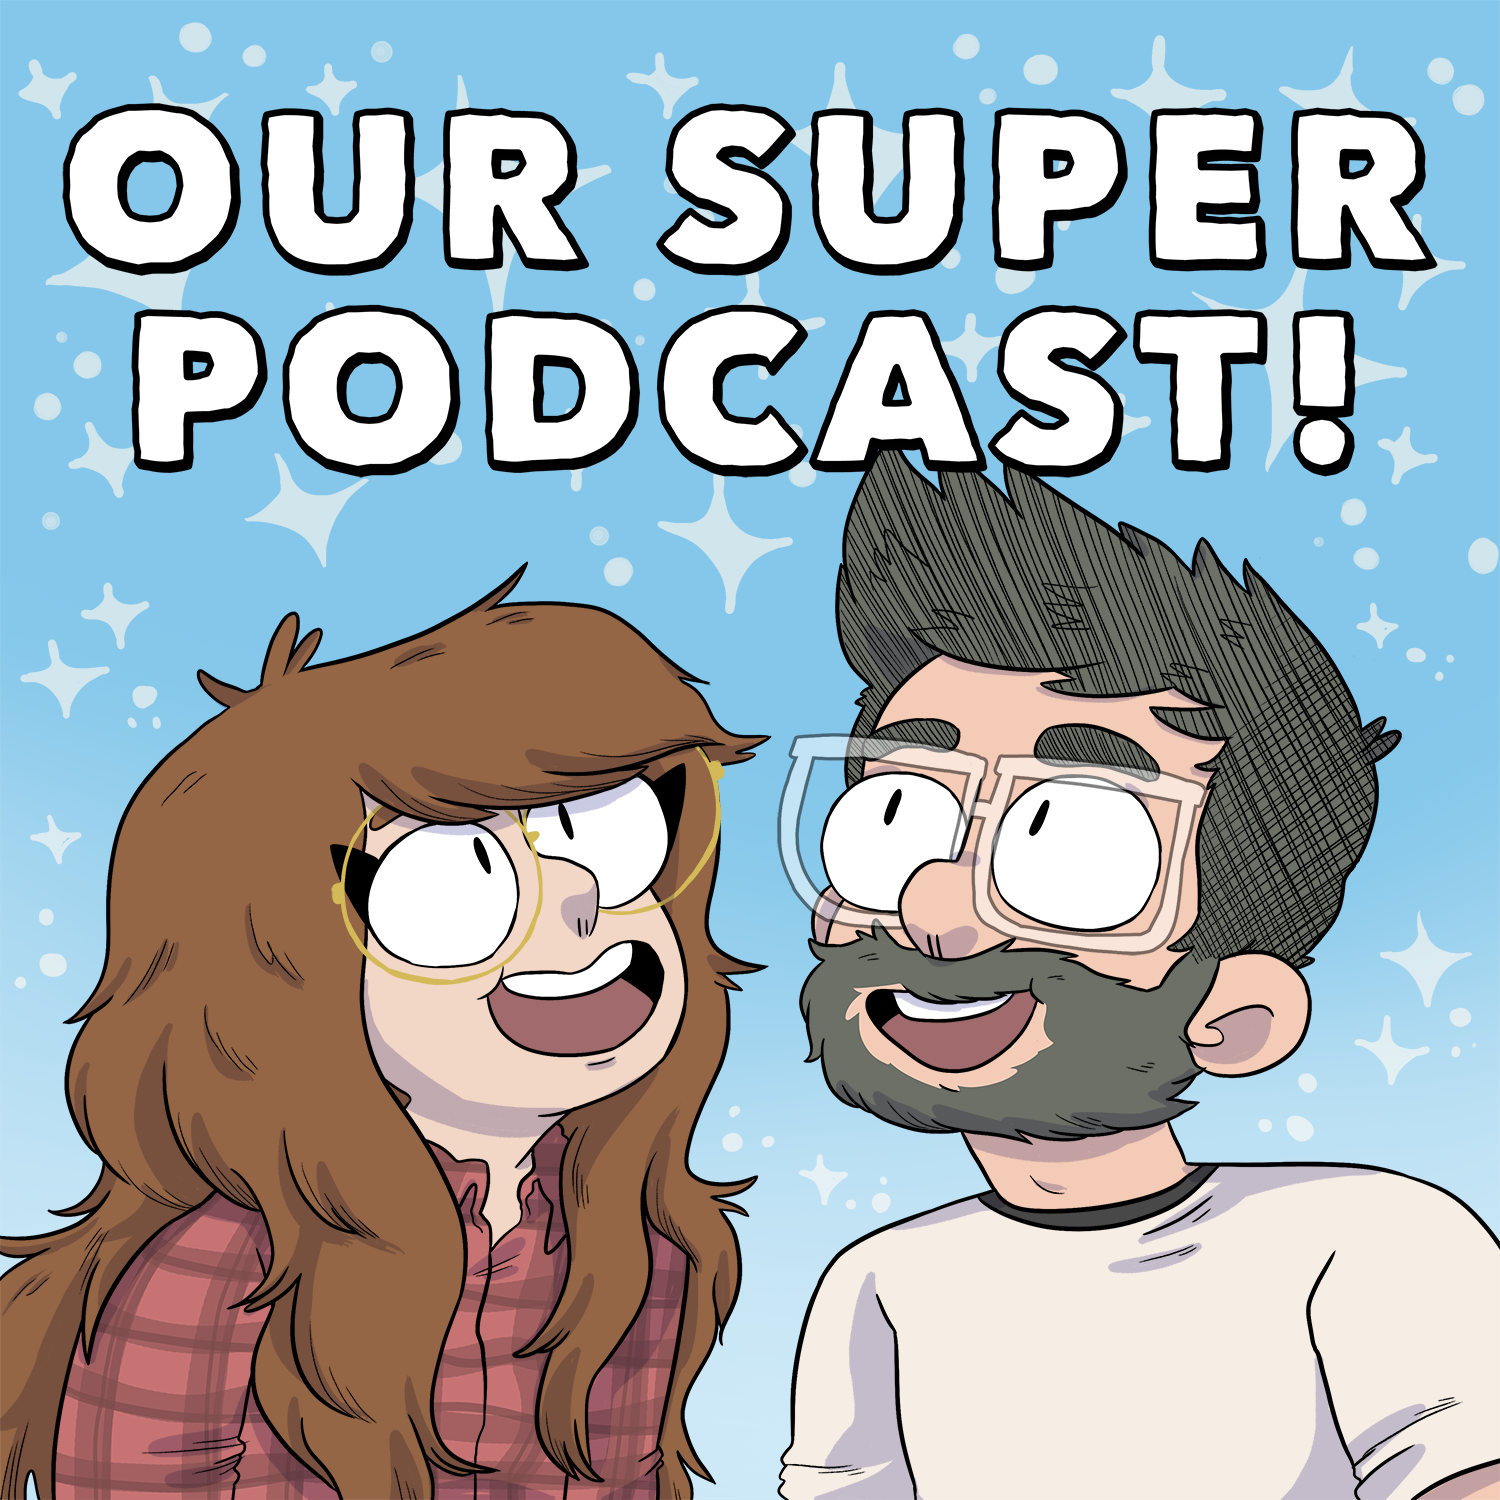 Our Super Podcast!